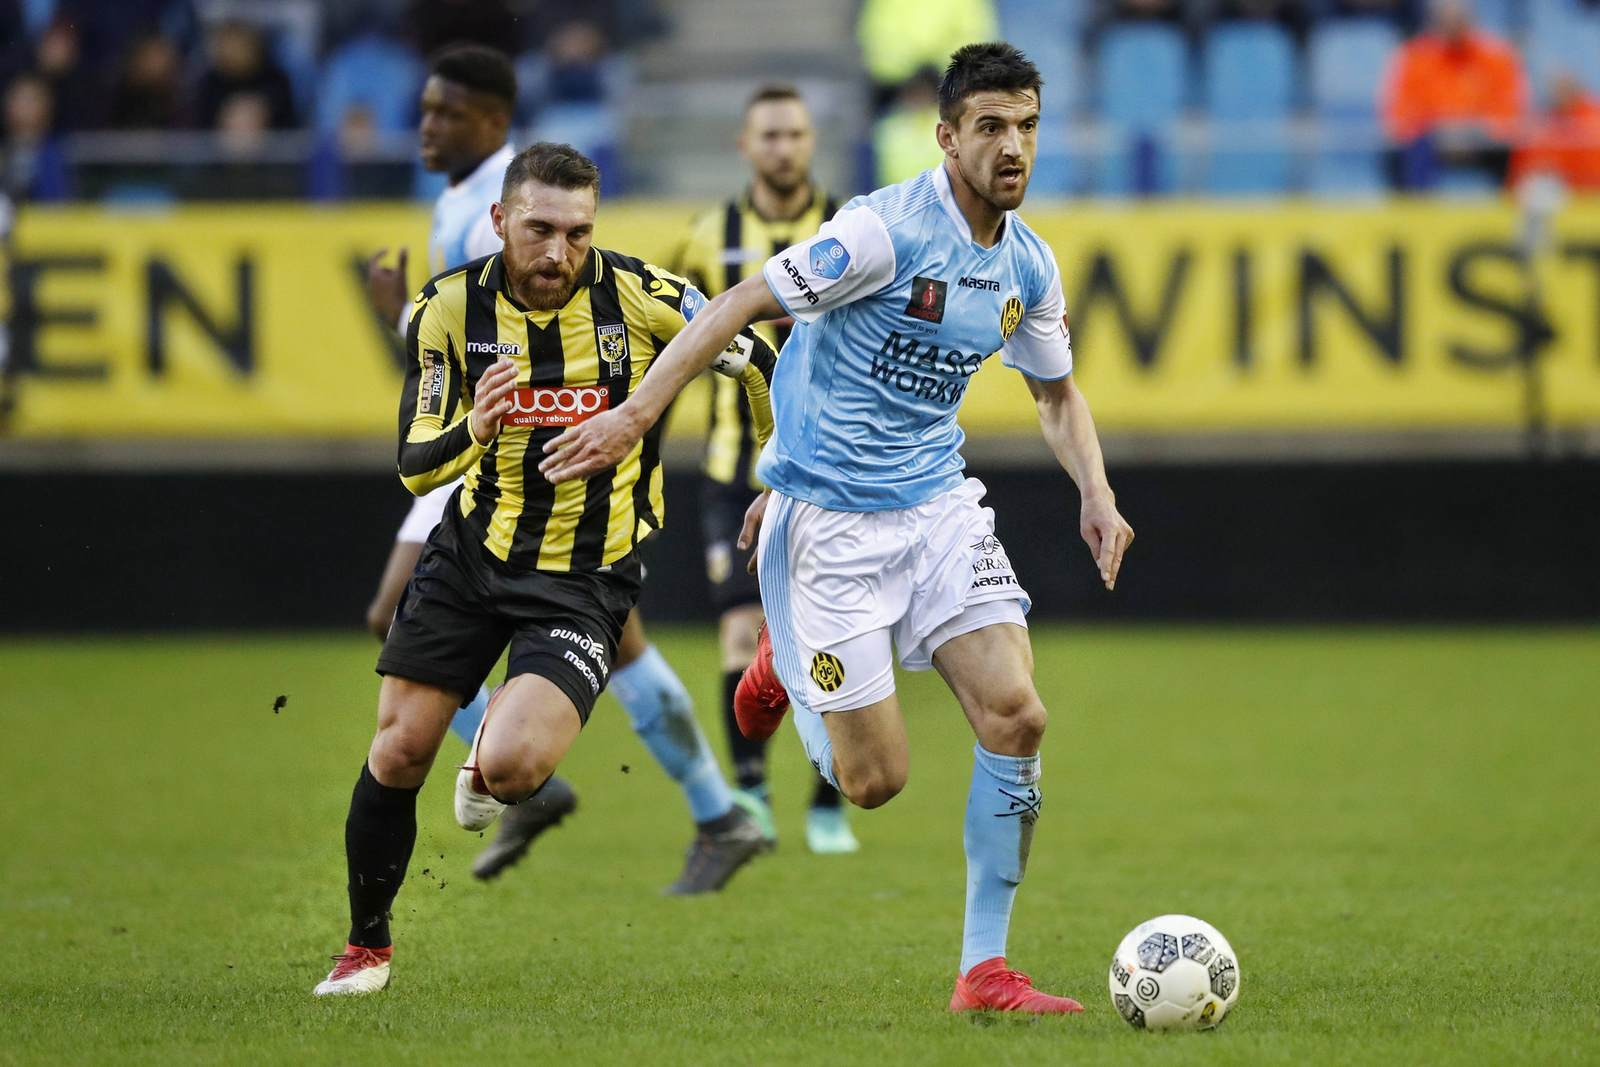 Ognjen Gnjatic am Ball für Roda Kerkrade